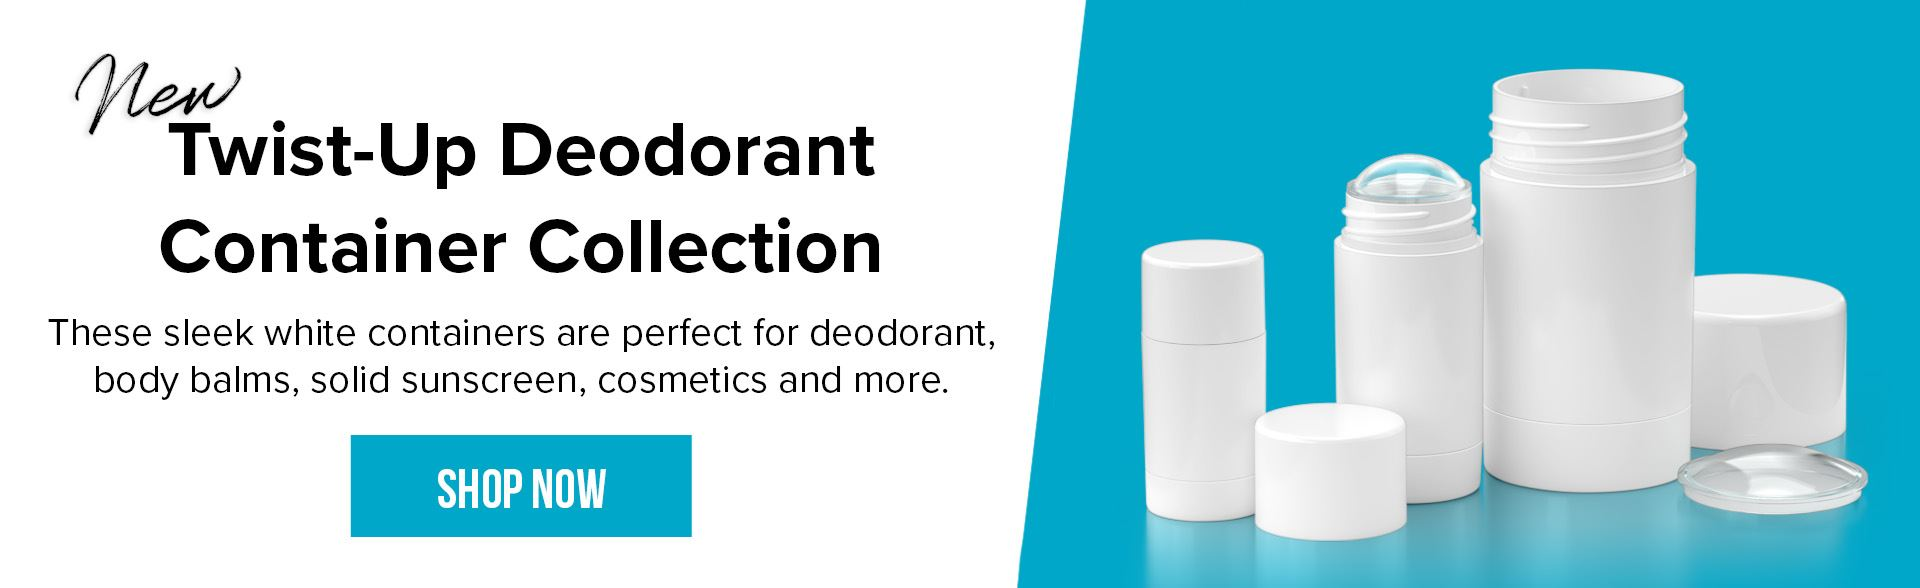 New Twist-up Deodorant Container Collection. These sleek white containers are perfect for deodorant, body balms, solid sunscreen, cosmetics and more. - Shop Now.